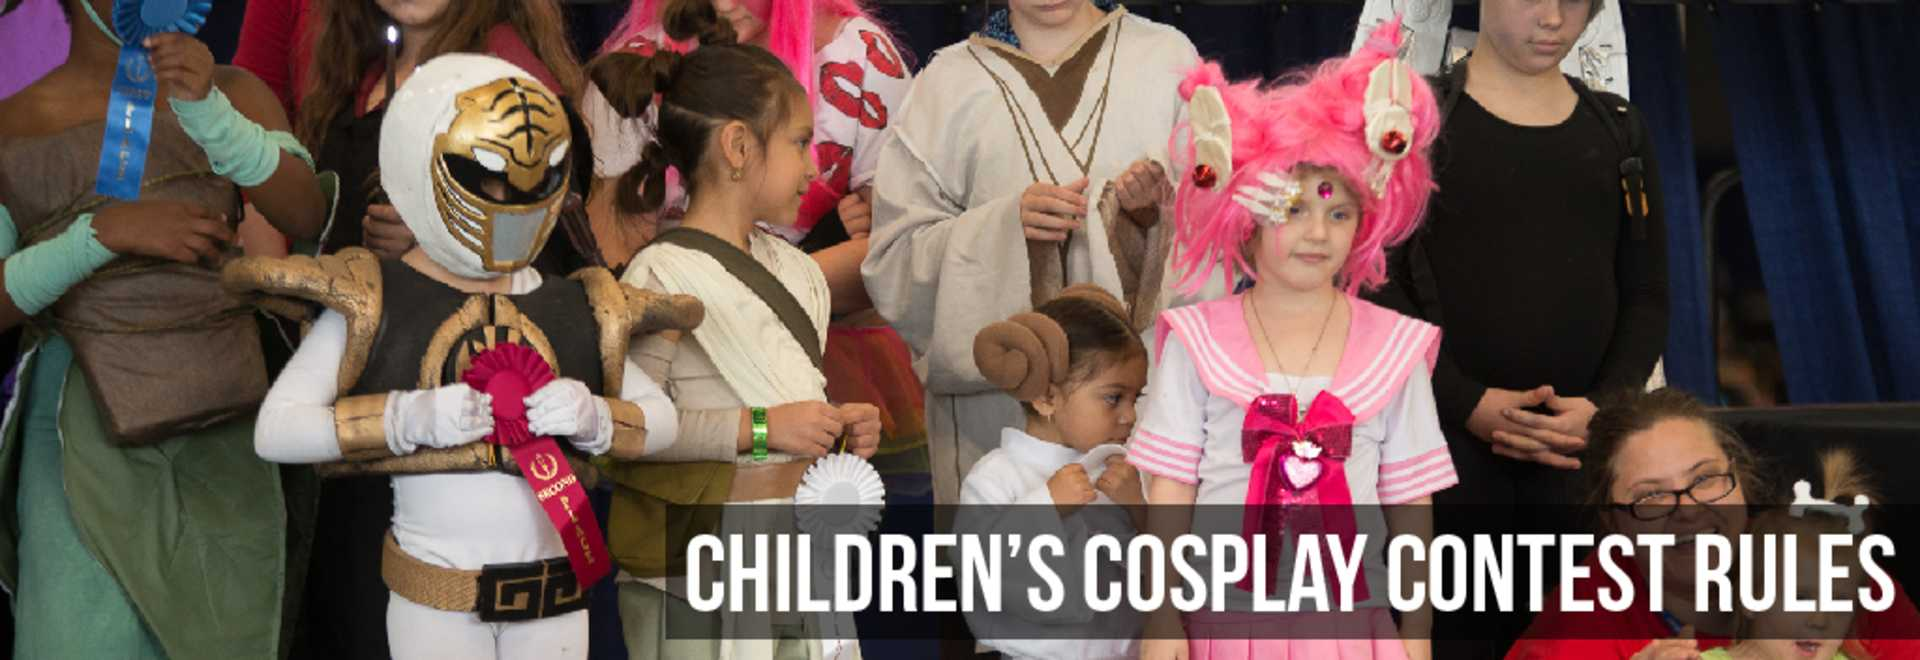 Children's Cosplay Rules